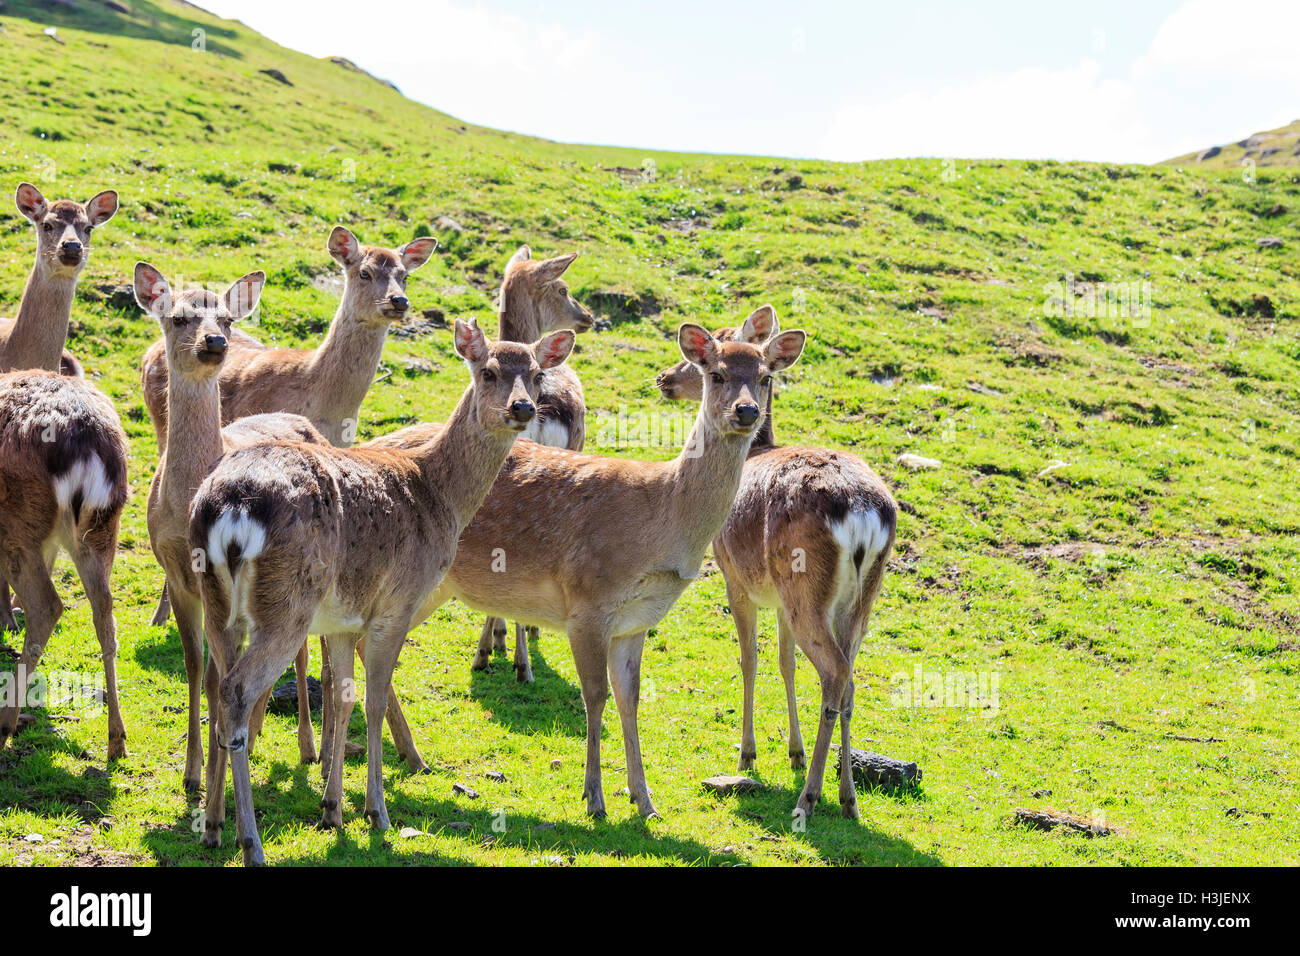 Deer in the beautiful West Midland Safari Park on APR 23, 2016 at Spring Grove, United Kingdom - Stock Image